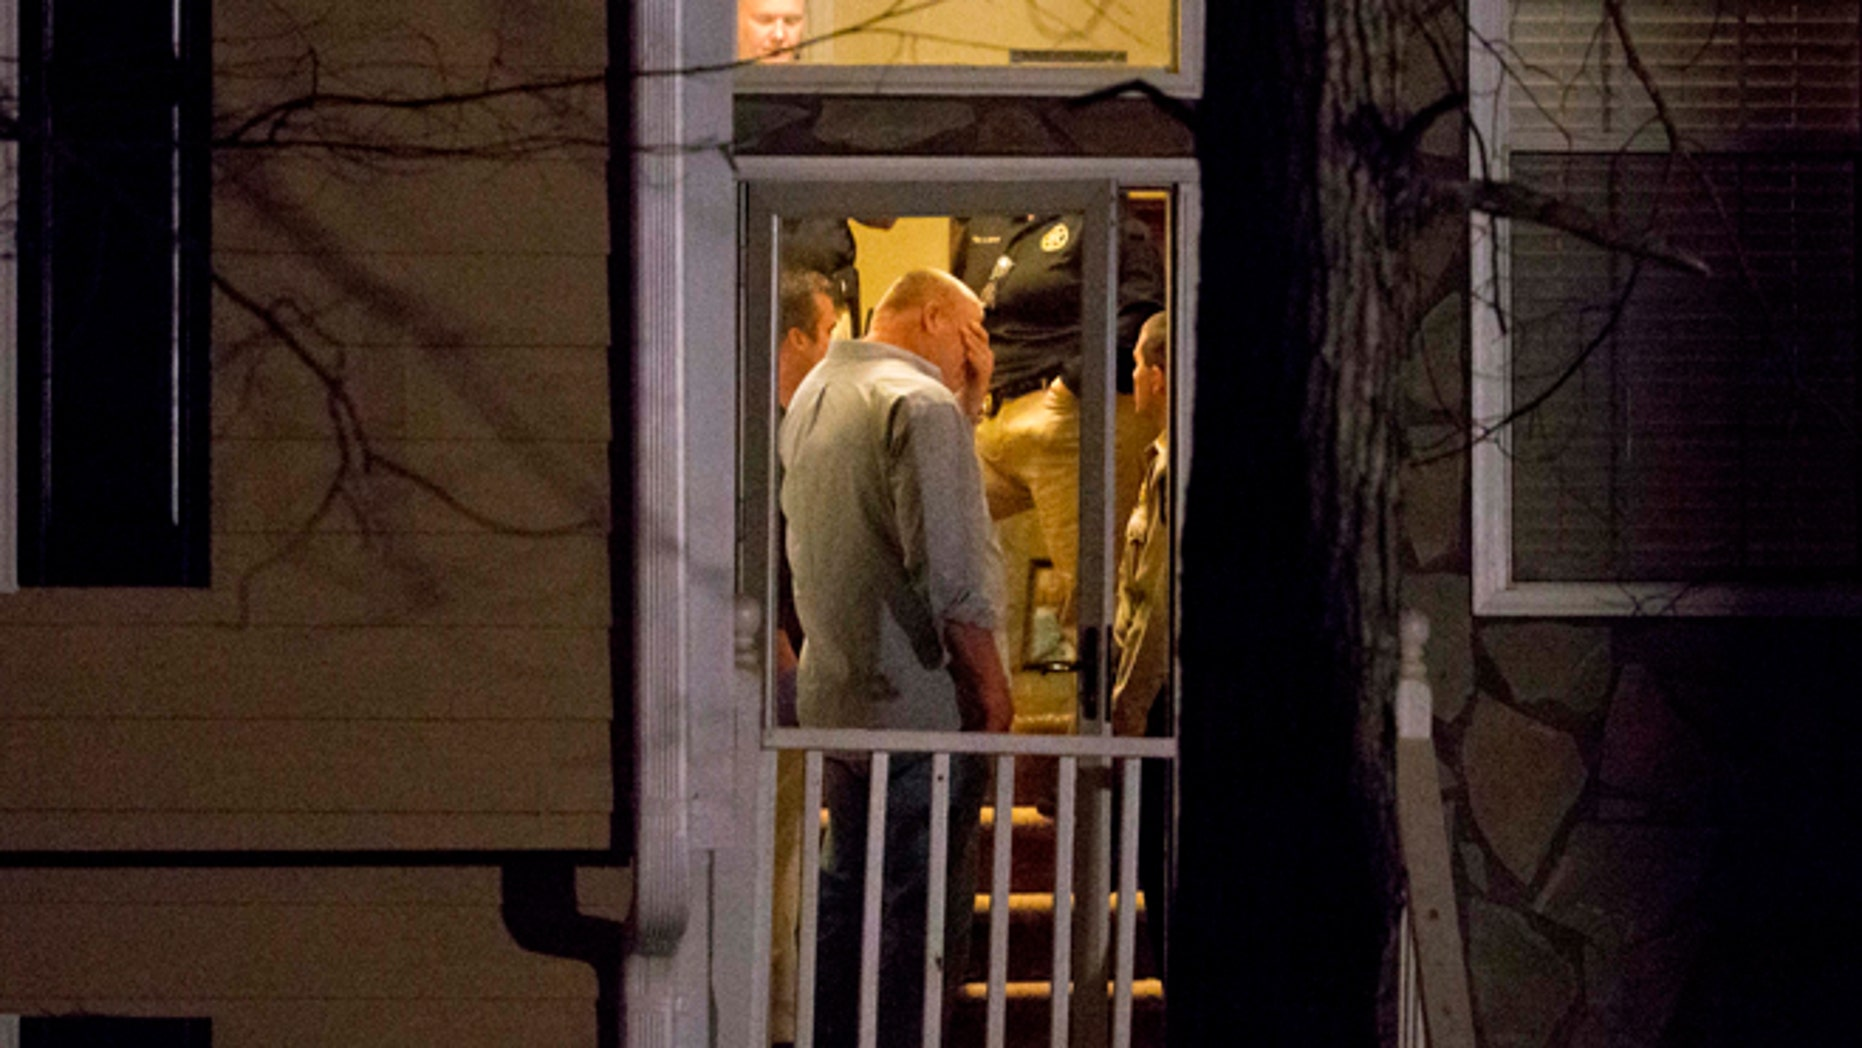 Feb. 7, 2015: Police stand in the doorway of a home while investigating the shooting scene where authorities say five people are dead, including the gunman, in Douglasville, Ga. (AP)